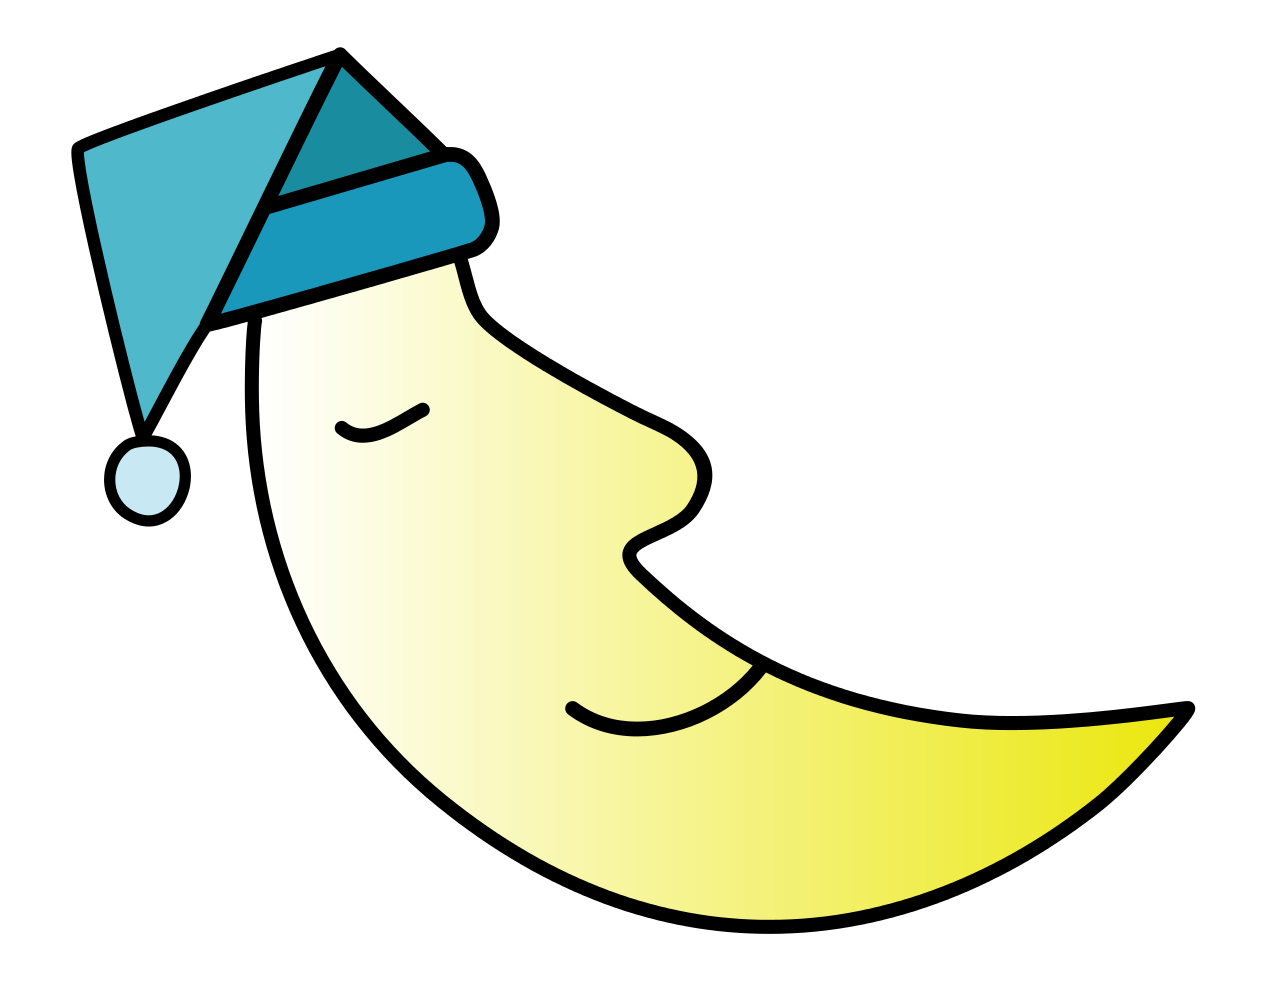 Sleeping in book clipart picture black and white File:Sleep.svg - Wikimedia Commons picture black and white